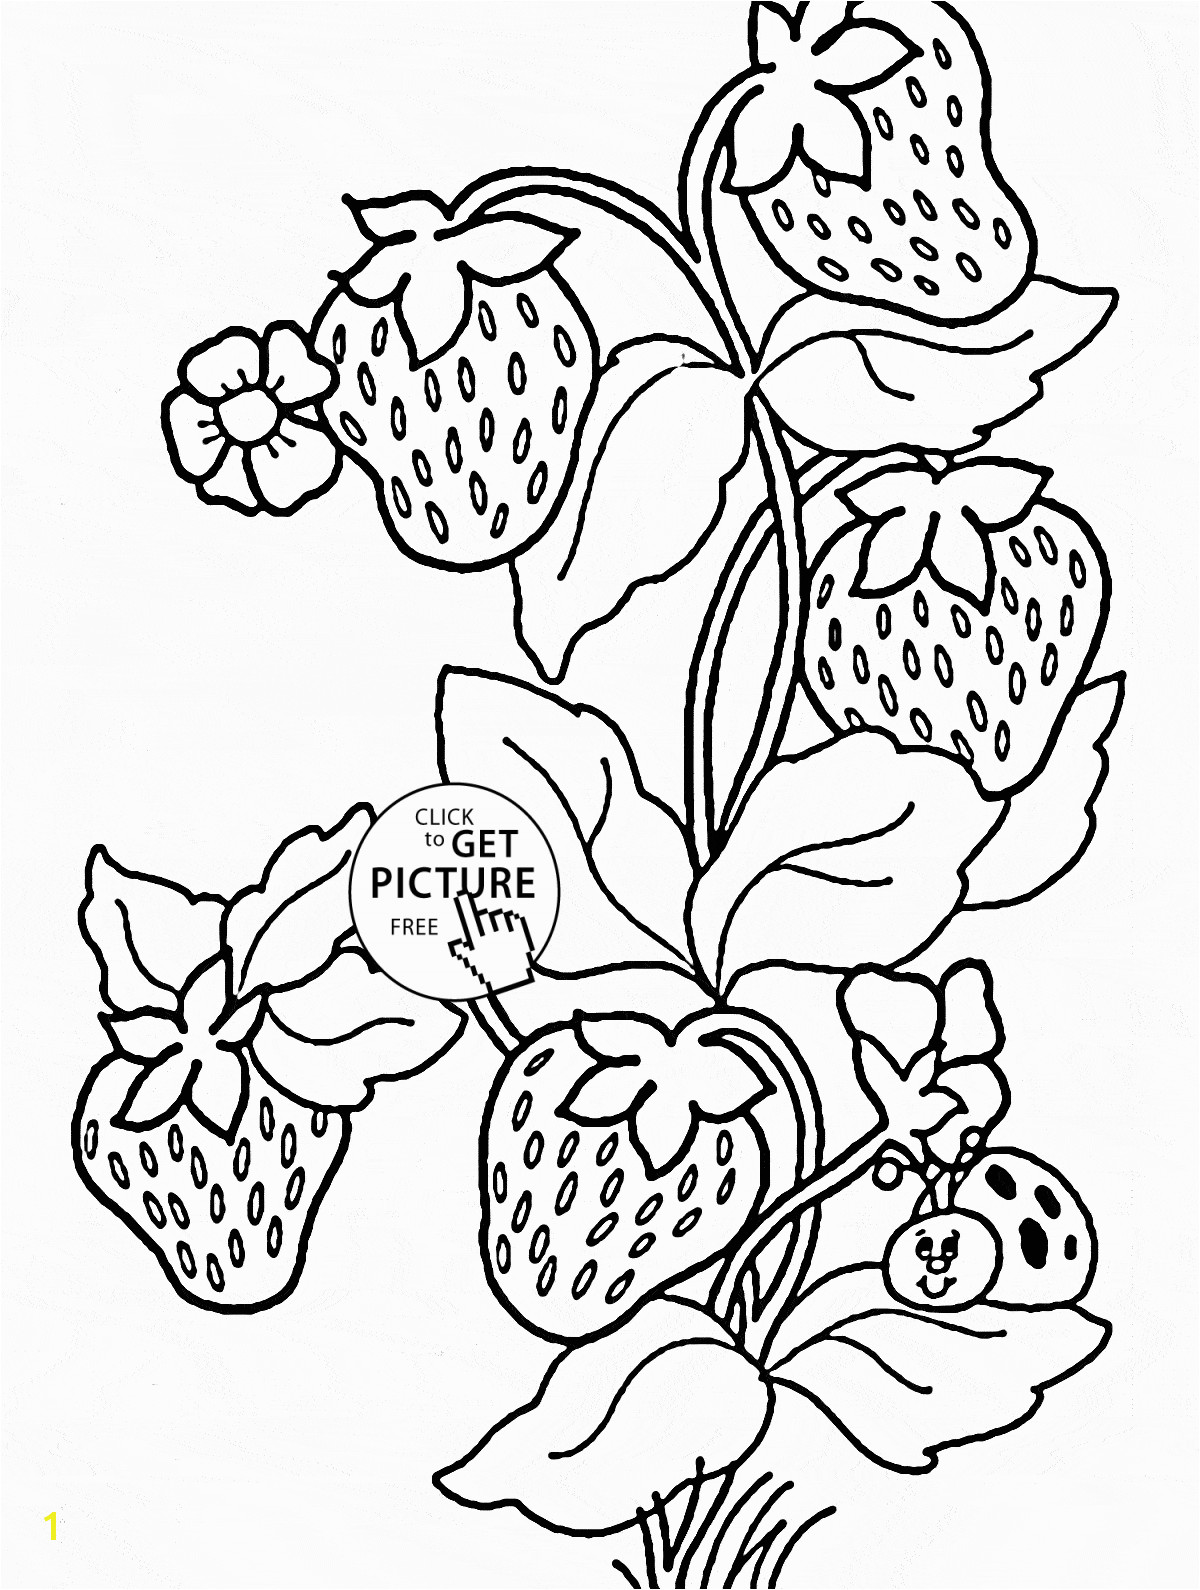 Ladybug And Strawberries coloring page for kids fruits coloring pages printables free Wuppsy